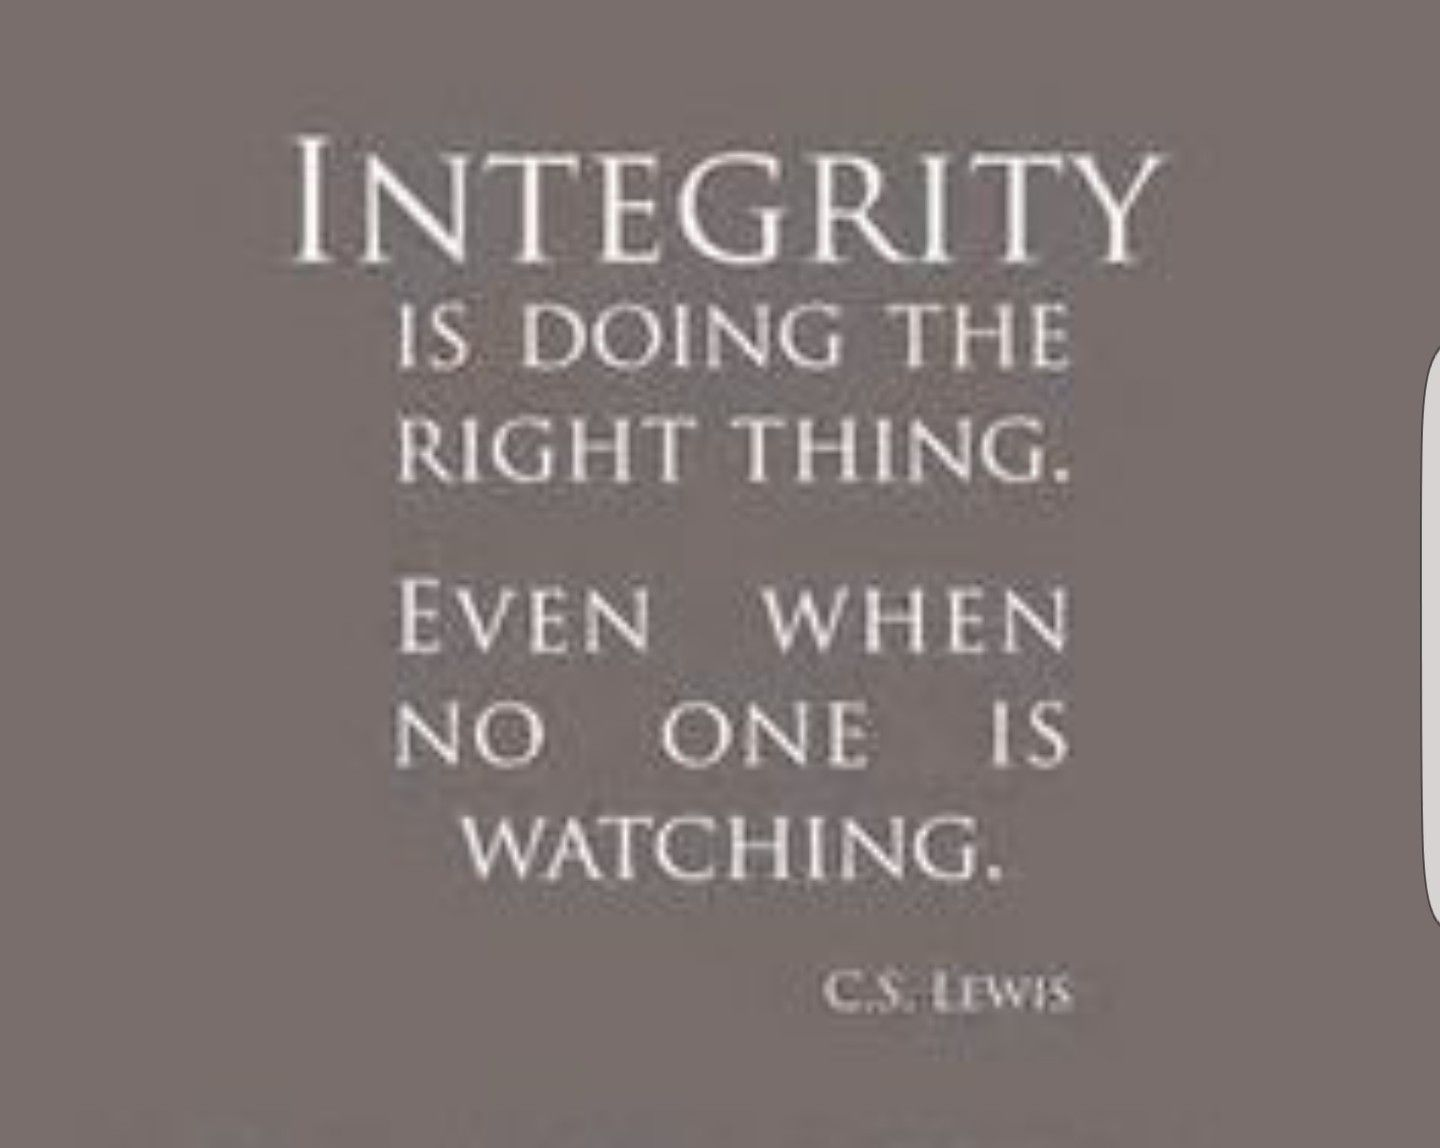 Pin By Katri Smith On Words Integrity Quotes Integrity Quotes Character Ethics Quotes